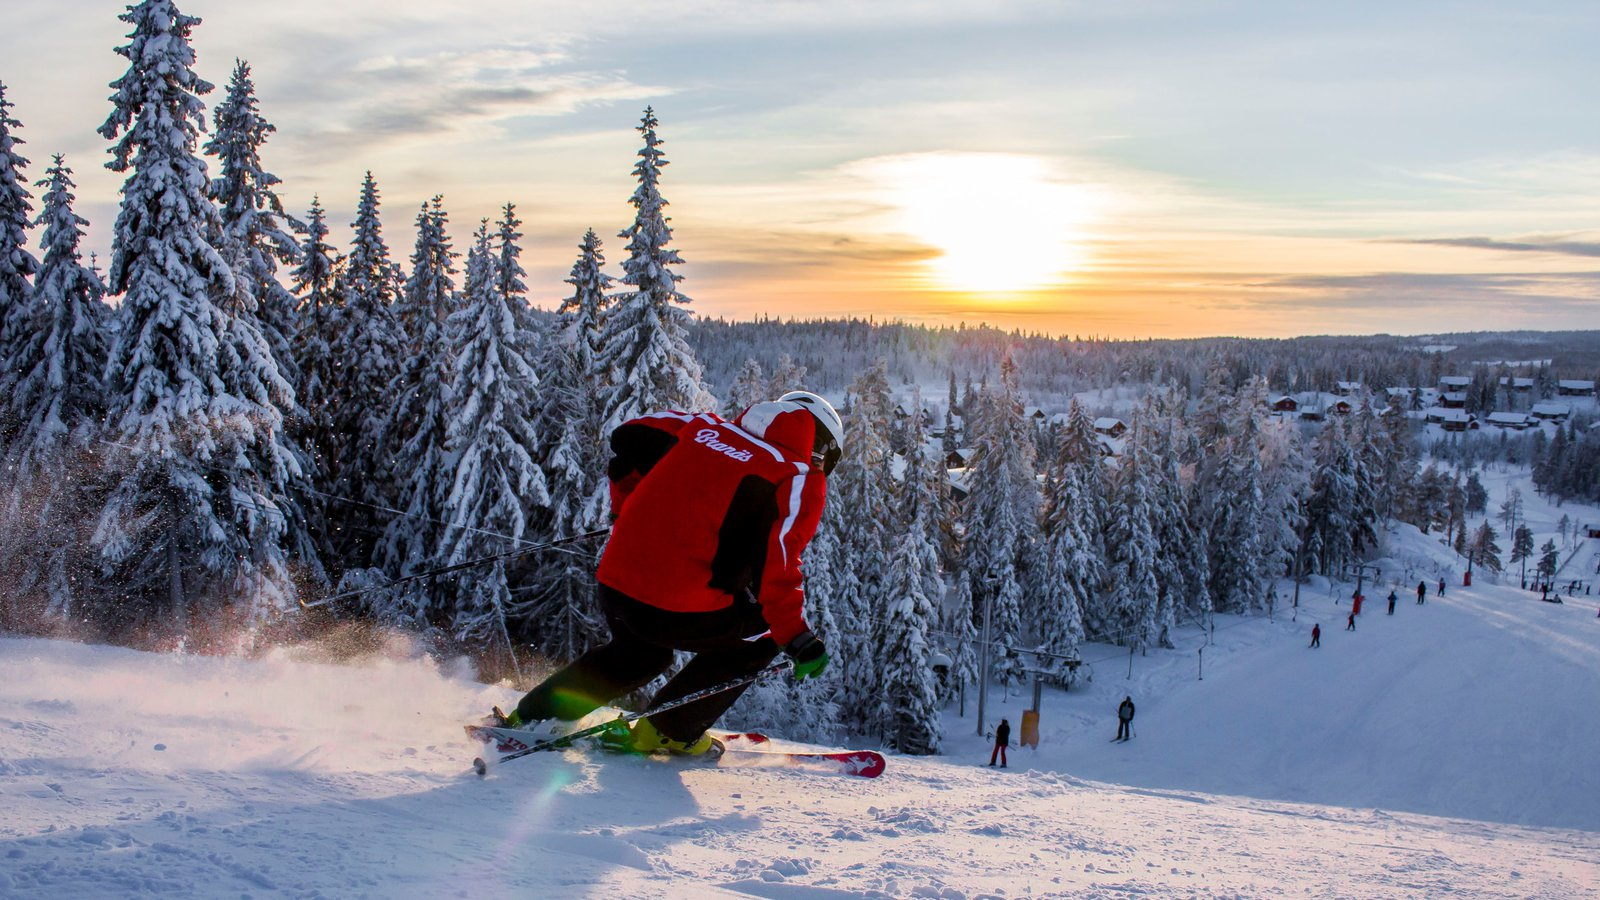 Branas Ski Resort which includes snow, snow skiing and forests